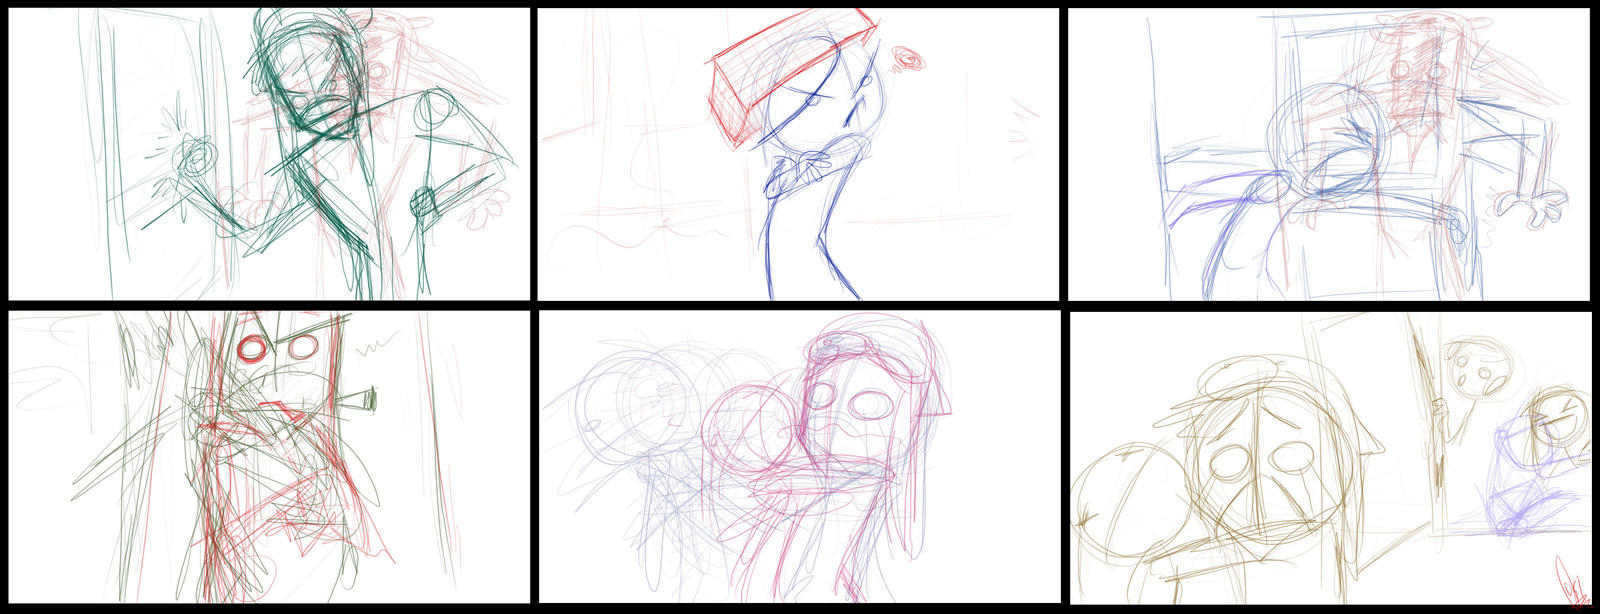 Short animations? - Sketches by ScribbleNetty